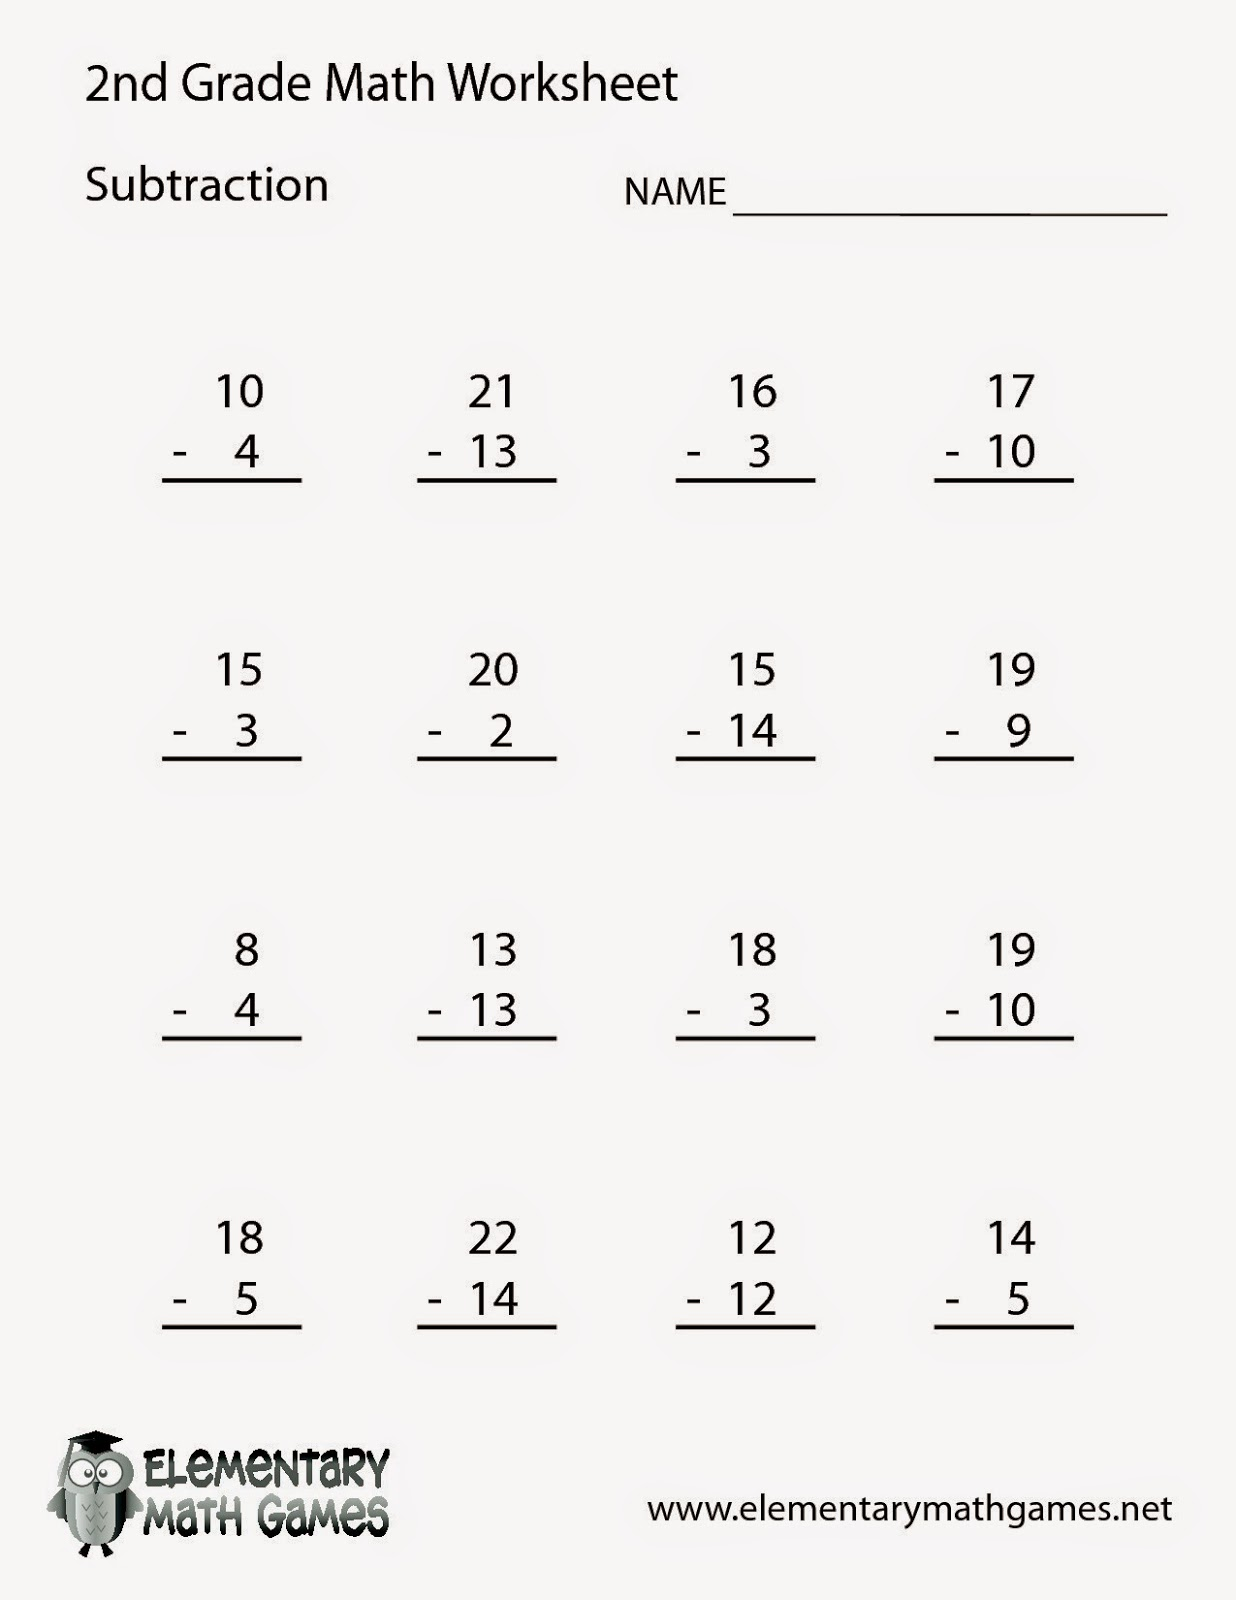 10th Grade Math Worksheet Addition